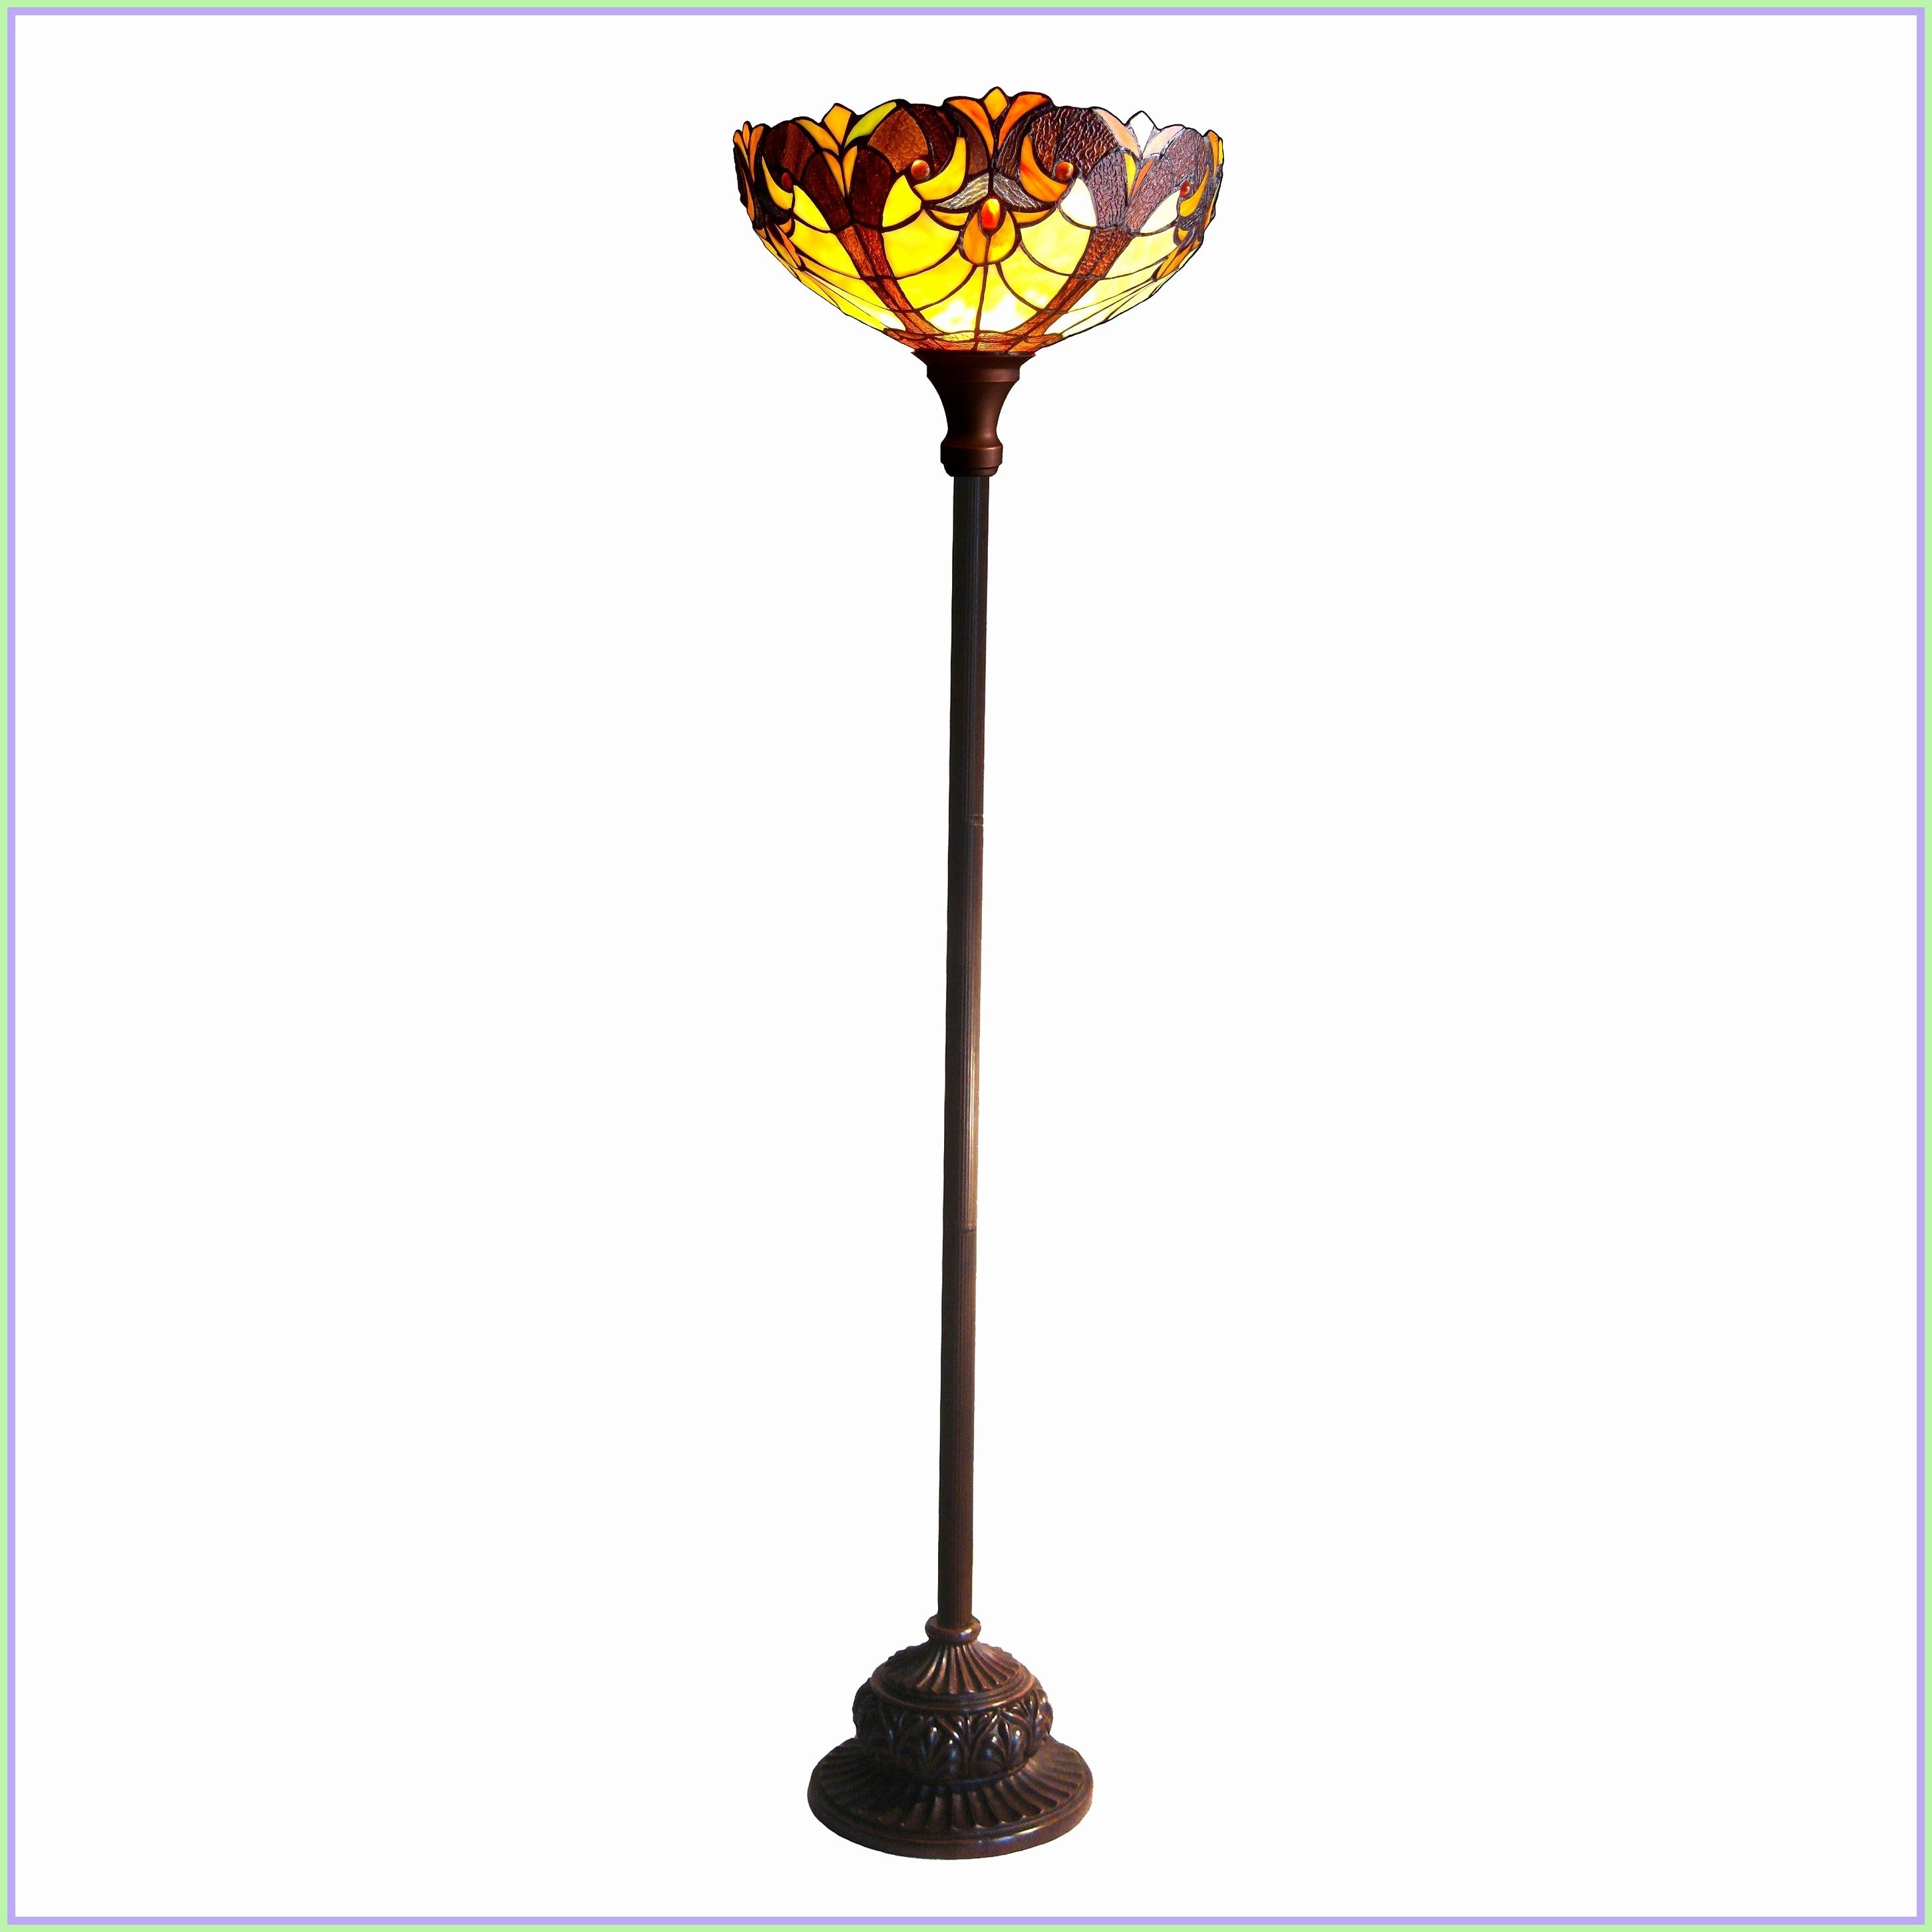 79 Reference Of Floor Lamp Torchiere Glass Replacement In 2020 Torchiere Floor Lamp Floor Lamp Victorian Floor Lamps